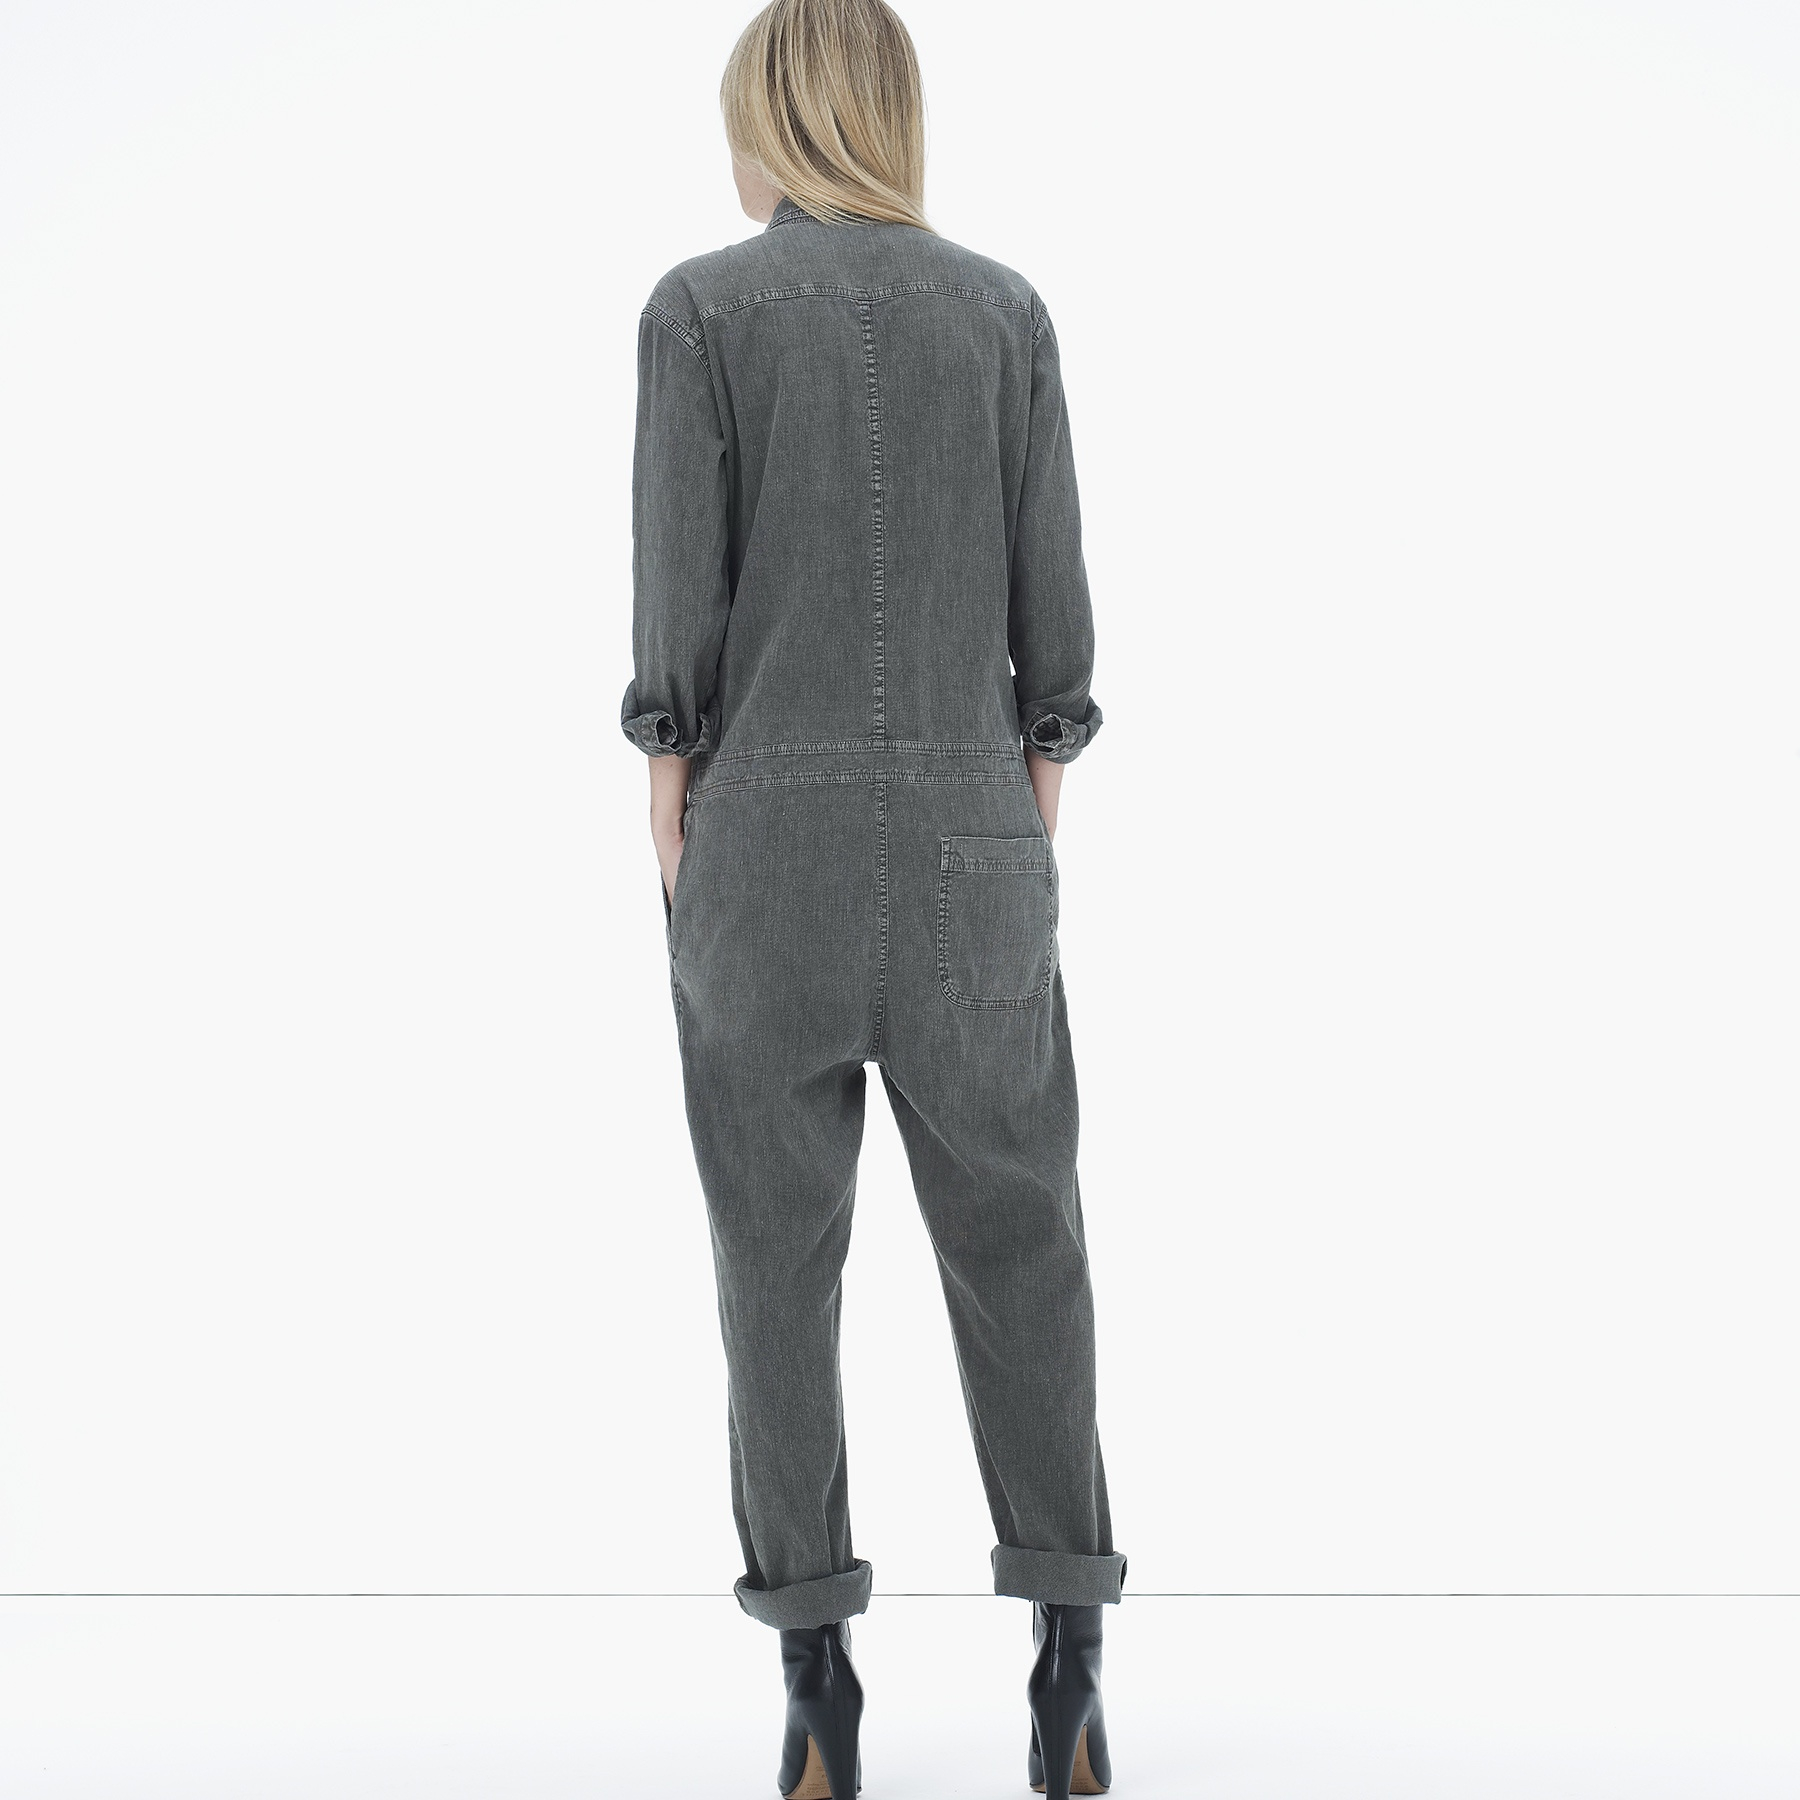 4b3220bbd7 Lyst - James Perse Stretch Cotton Linen Jumpsuit in Gray